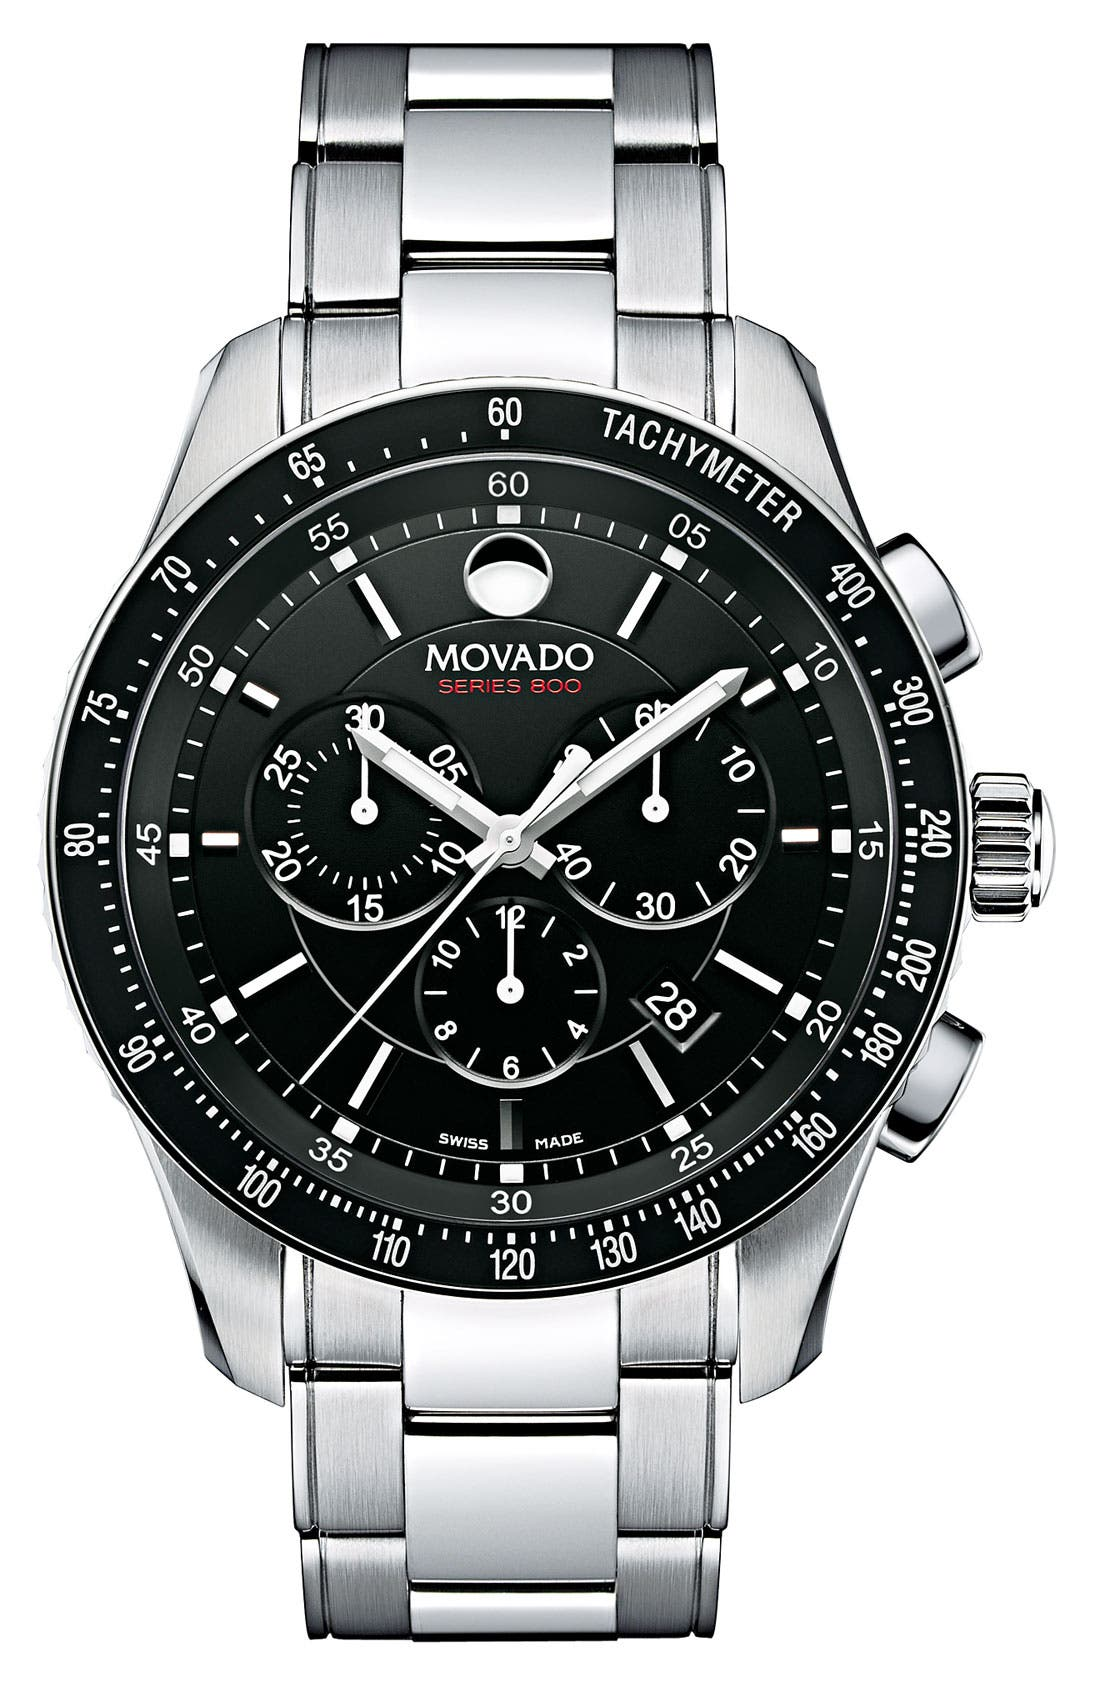 Alternate Image 1 Selected - Movado 'Series 800' Chronograph Bracelet Watch, 42mm